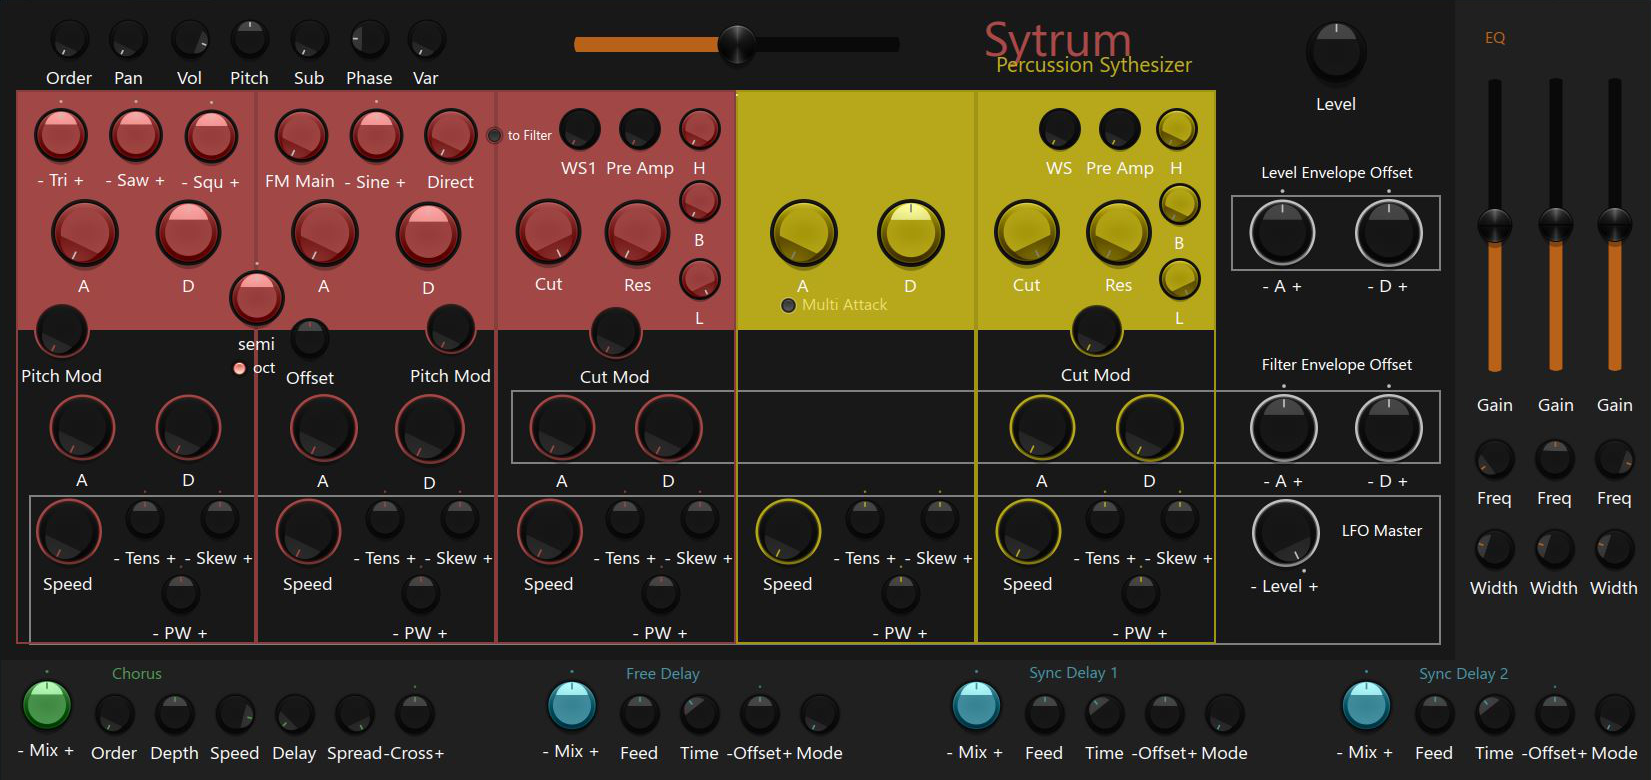 Sytrum Percussion Synth.JPG